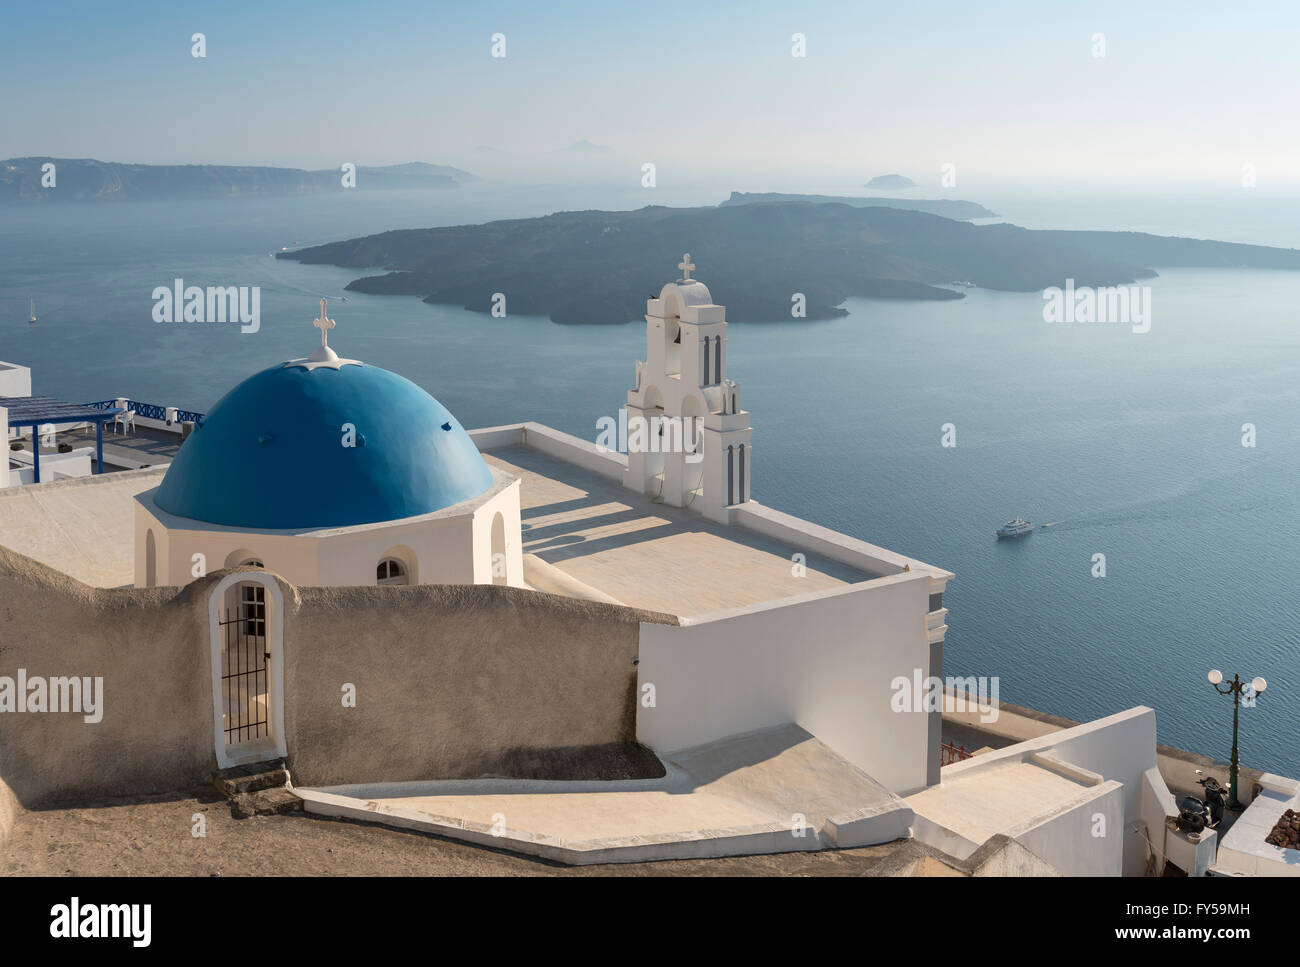 Blue dome and bell-tower of Firostefani Church, Santorini, Greece - Stock Image